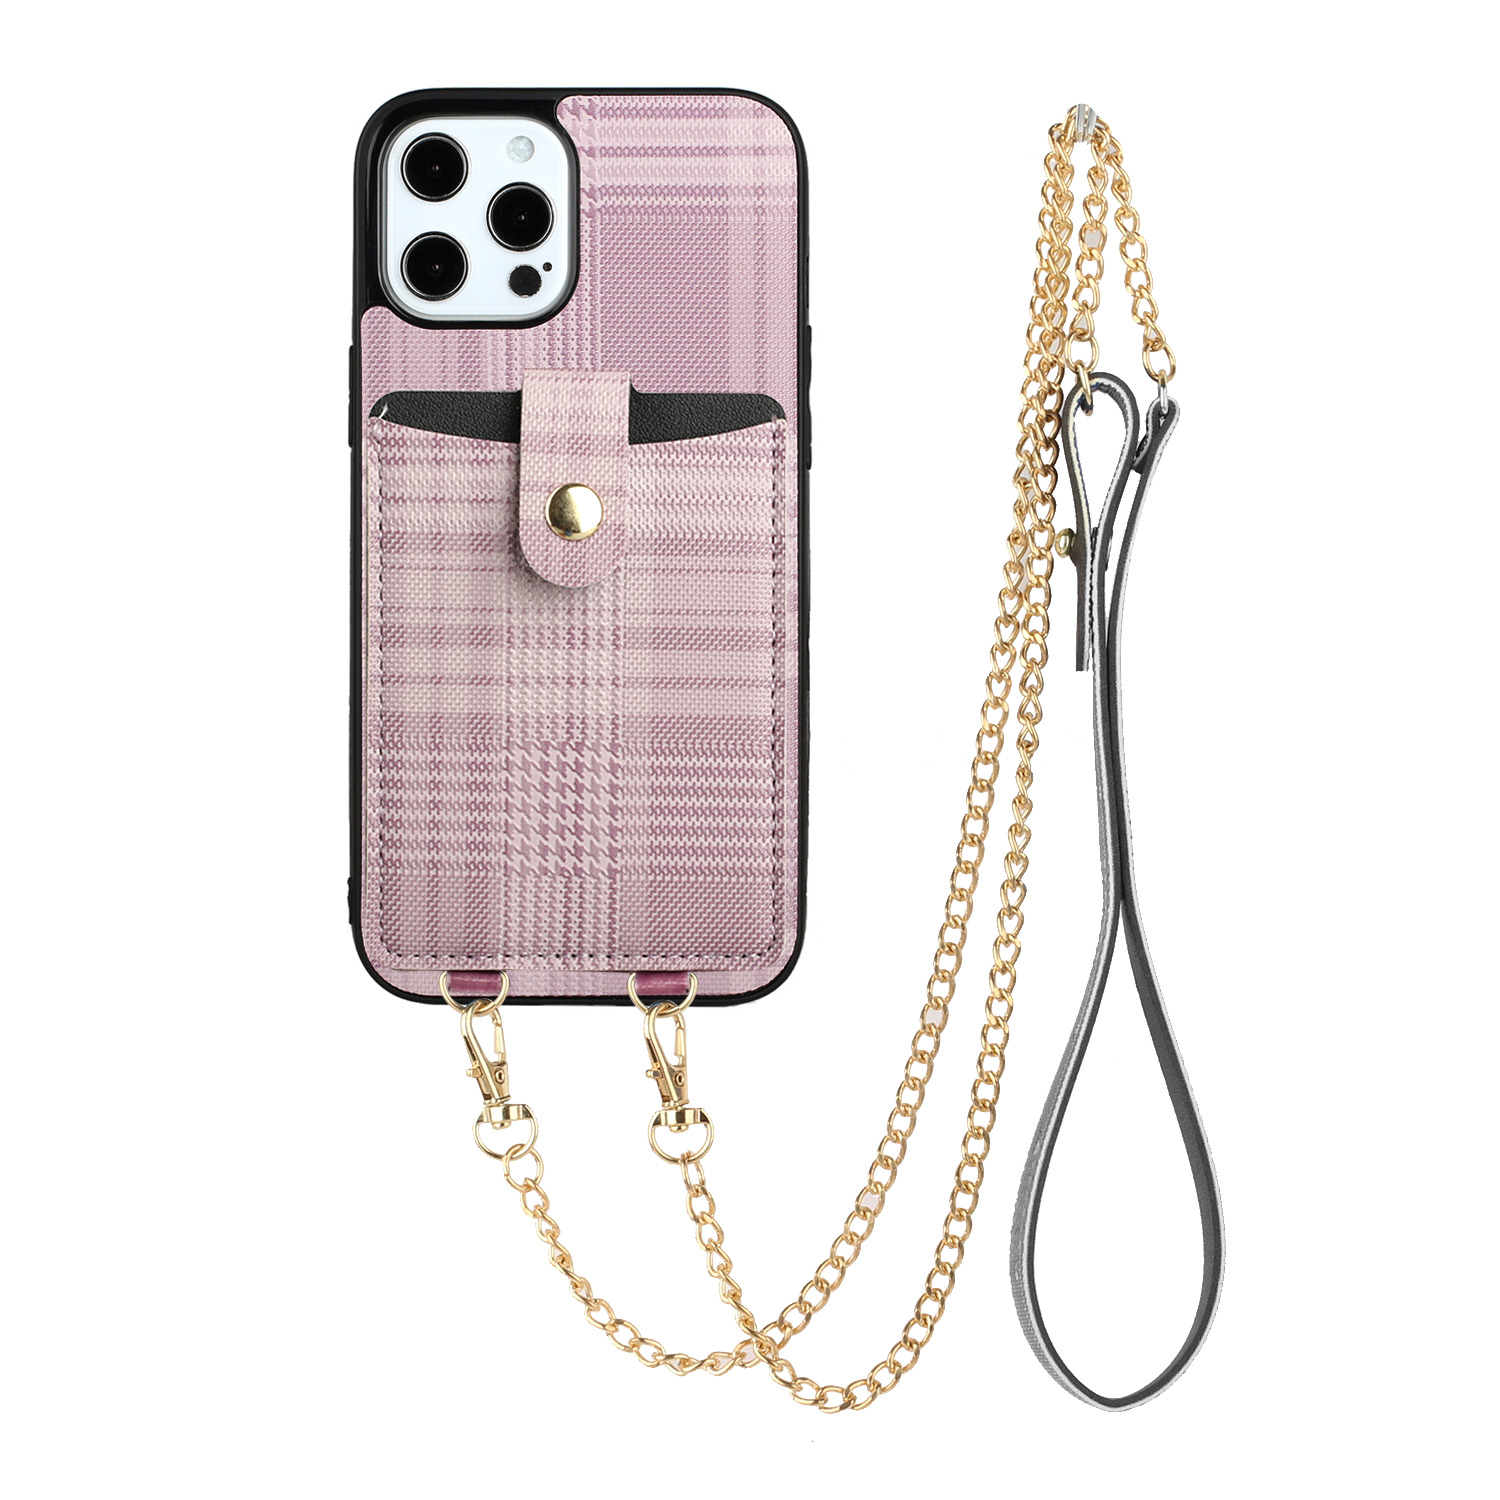 Protective Case Suitable For Iphone11/11pro/11promax Lattice Pattern Messenger Bag Card Mobile Phone Case Pink purple_iphone11PROMAX